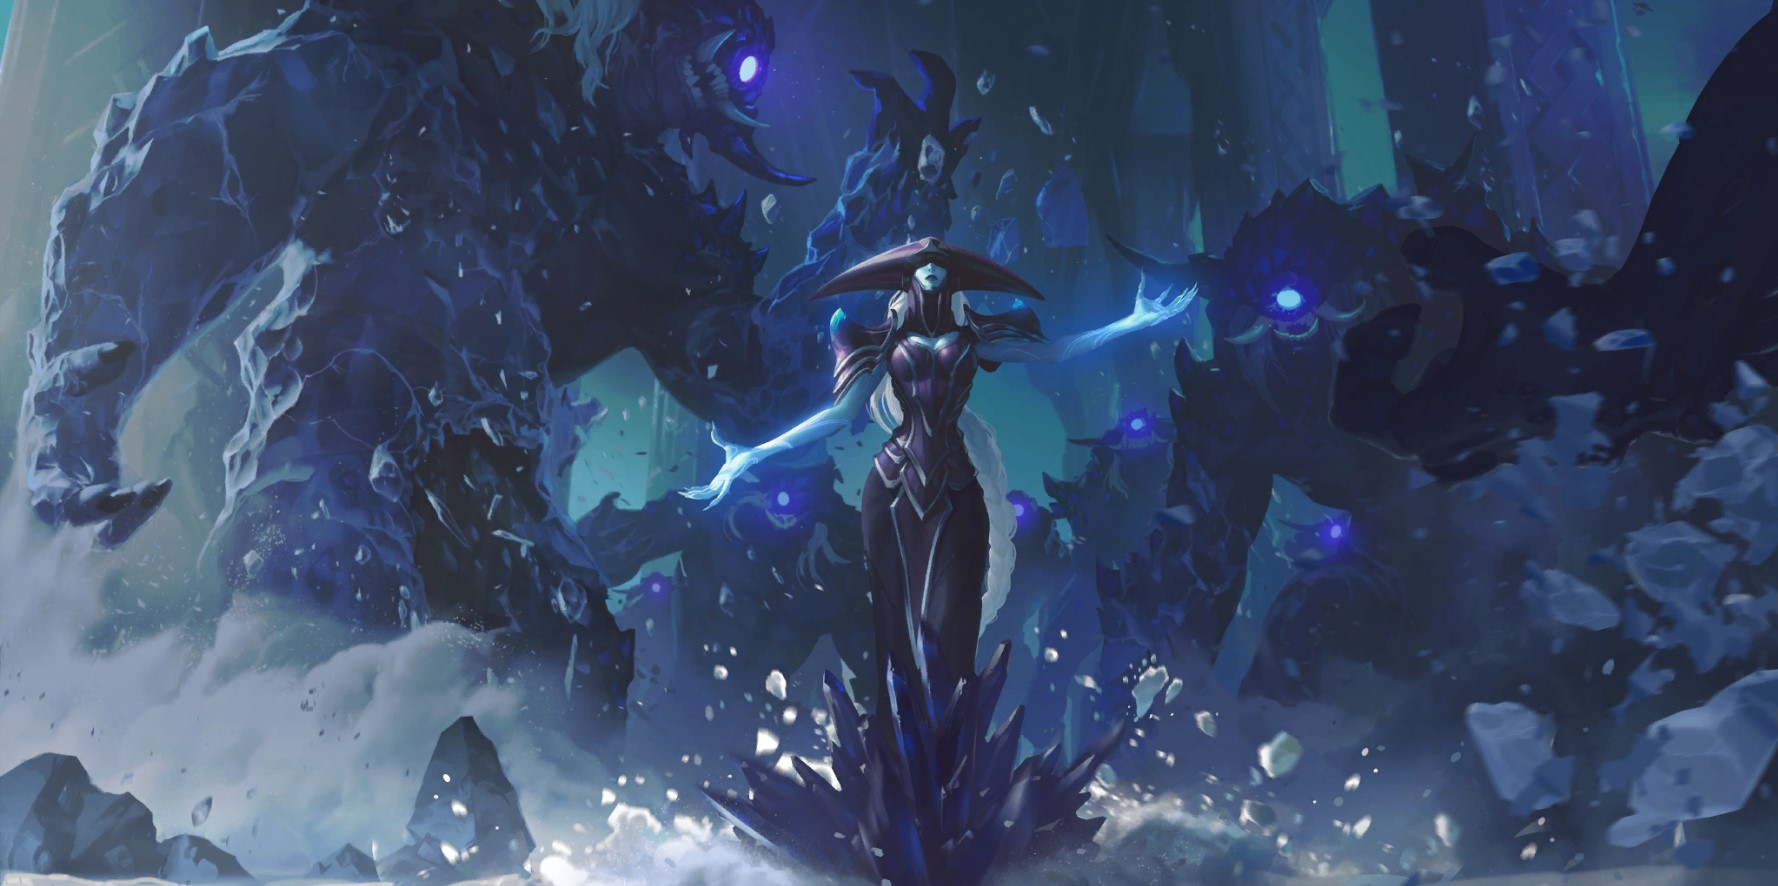 Empires of the Ascended LoR Card Impressions: Lissandra (Watcher, Entomb, and More)